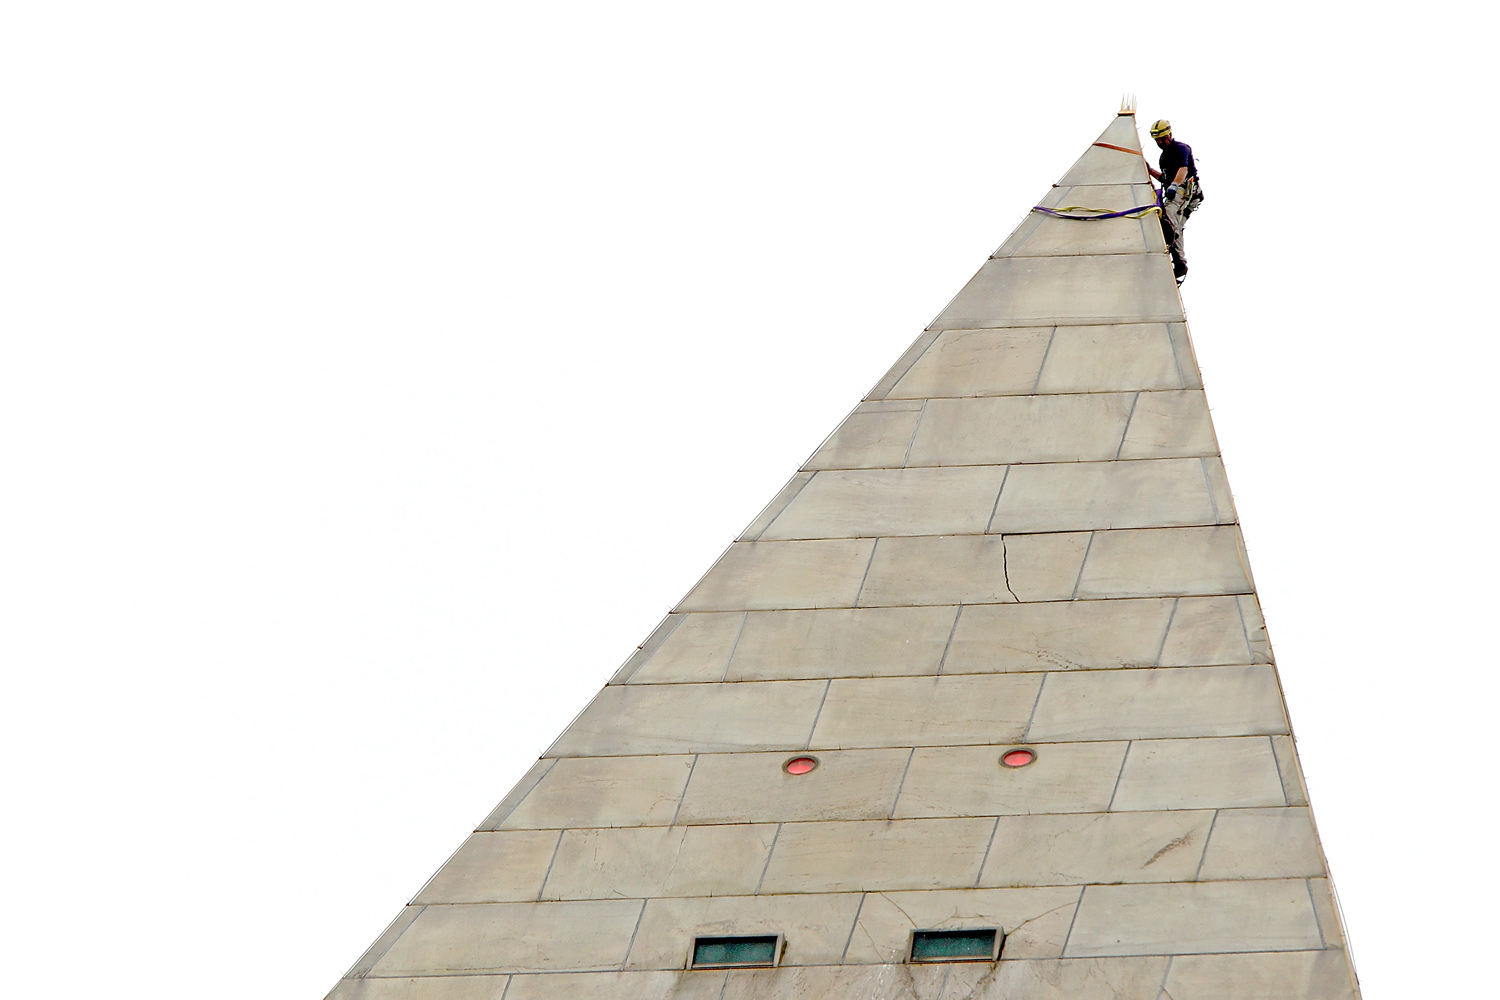 September 27, 2011. An engineer begins the process of conducting a block-by-block inspection of the exterior of the Washington Monument while suspended by ropes in Washington, DC.